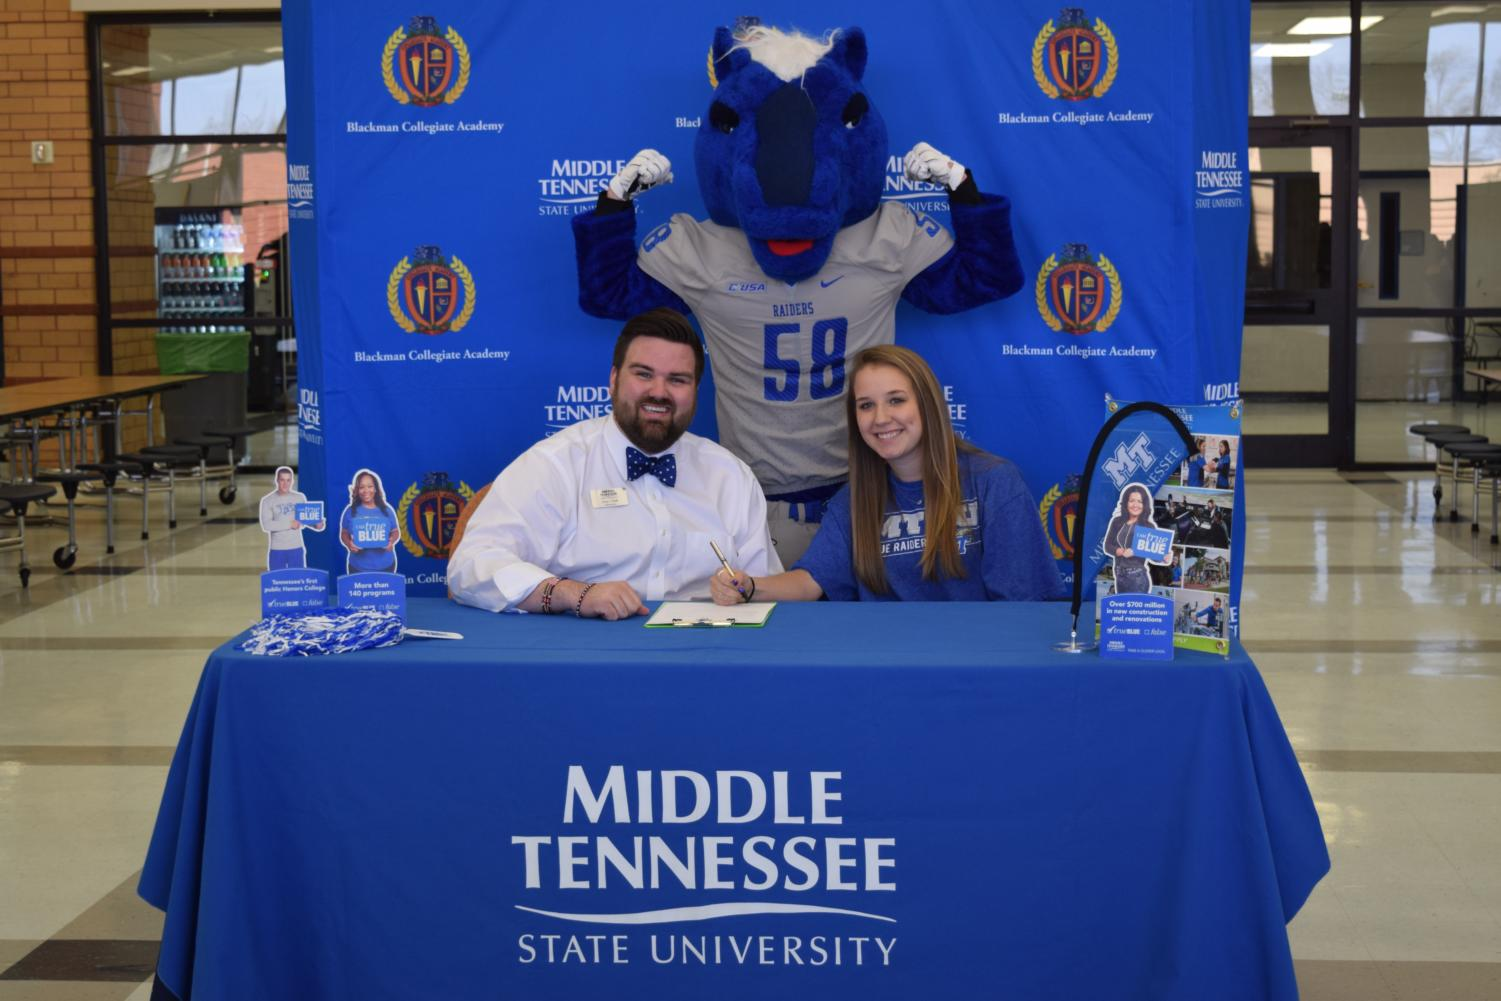 Carly+Bowen+will+attend+Middle+Tennessee+State+University+in+the+fall.